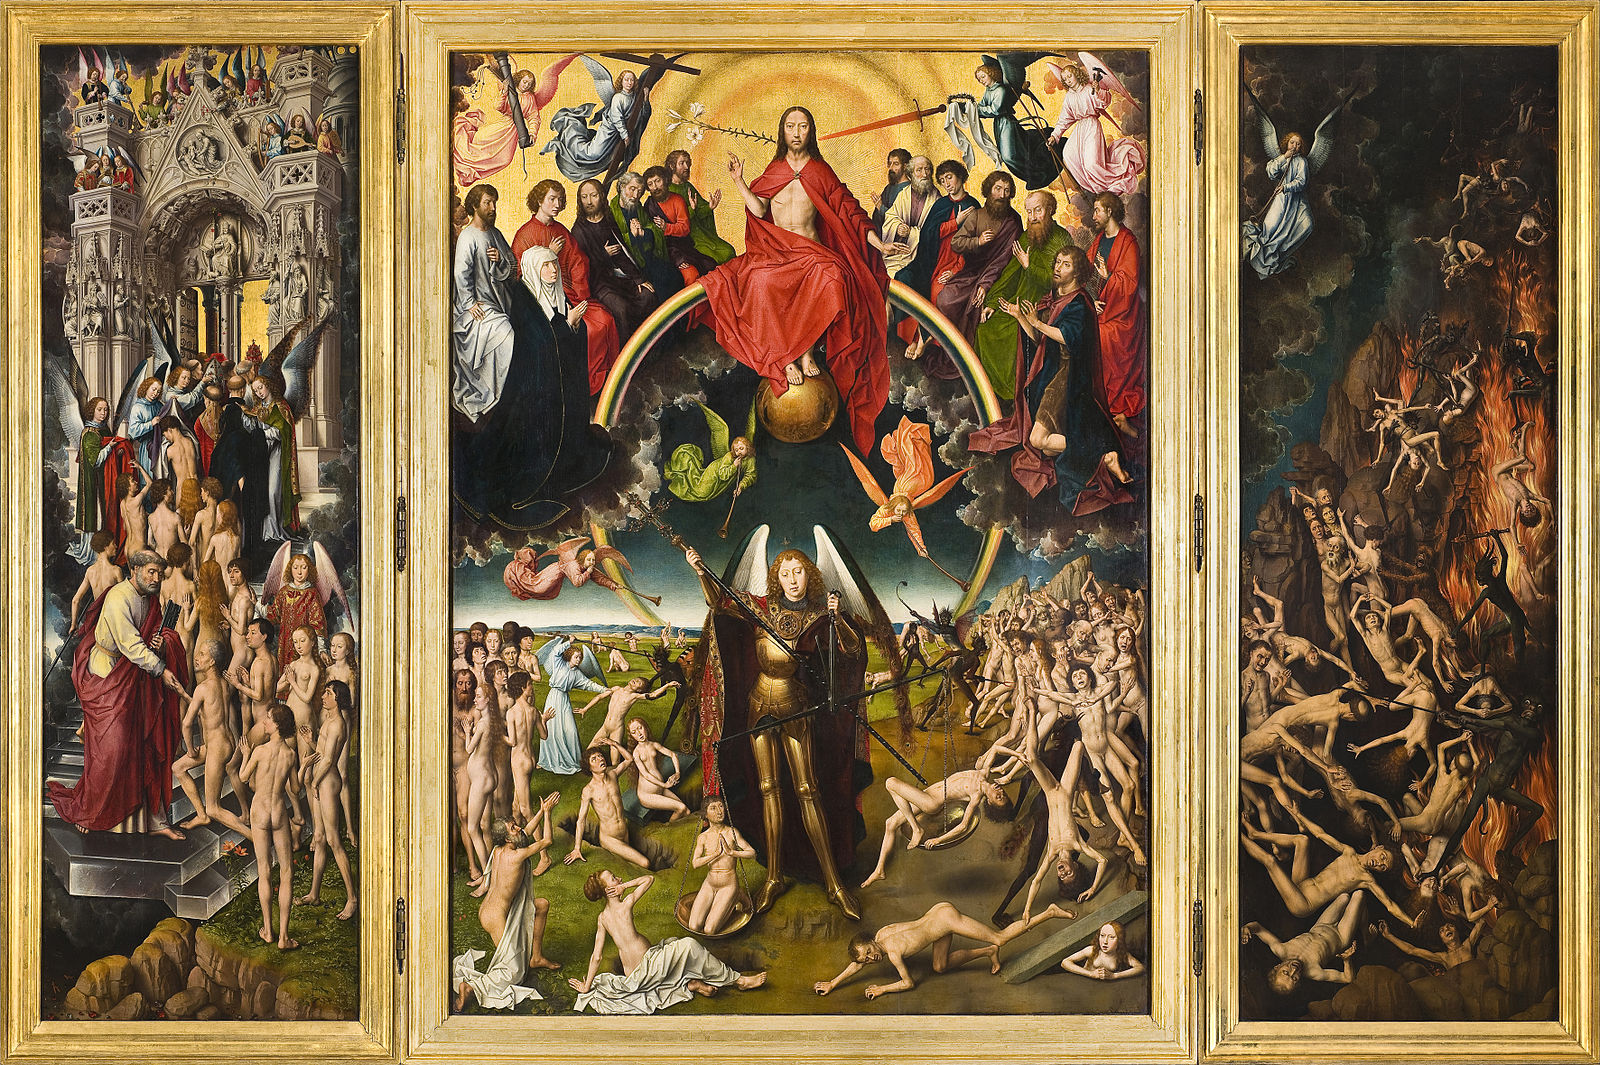 The Last Judgment , Hans Memling, 15th C. (Wikimedia Commons)